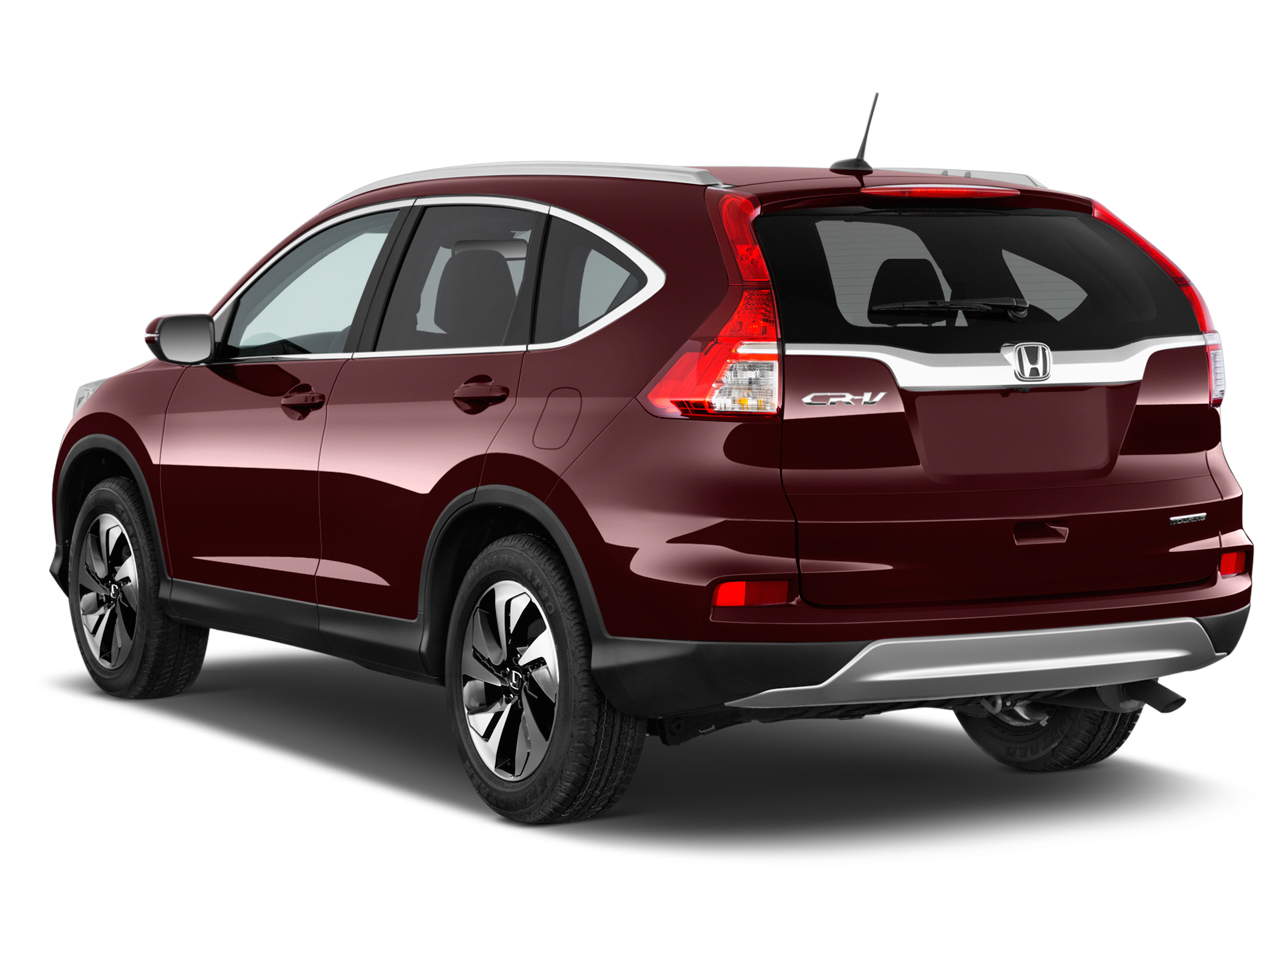 nissan rogue vs honda cr v compare cars. Black Bedroom Furniture Sets. Home Design Ideas